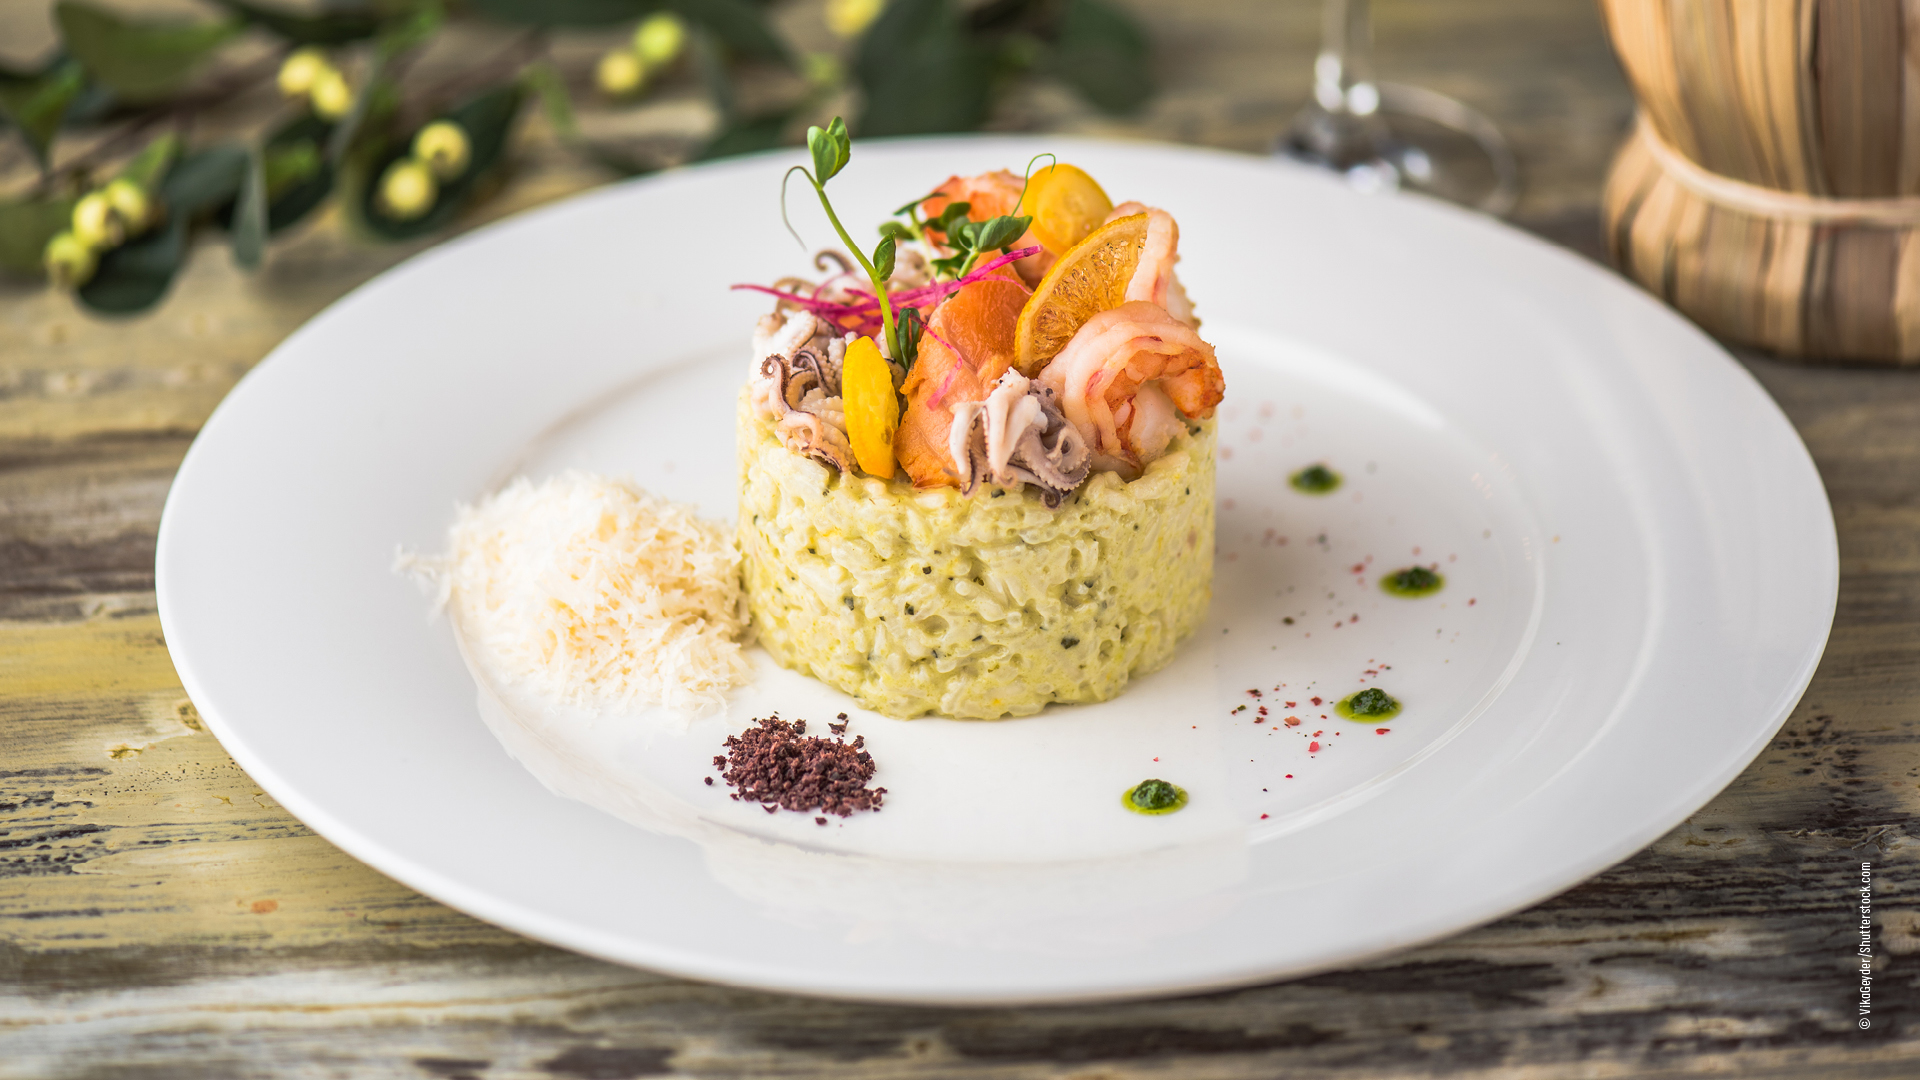 Foodstyling_zuhaus_Risotto